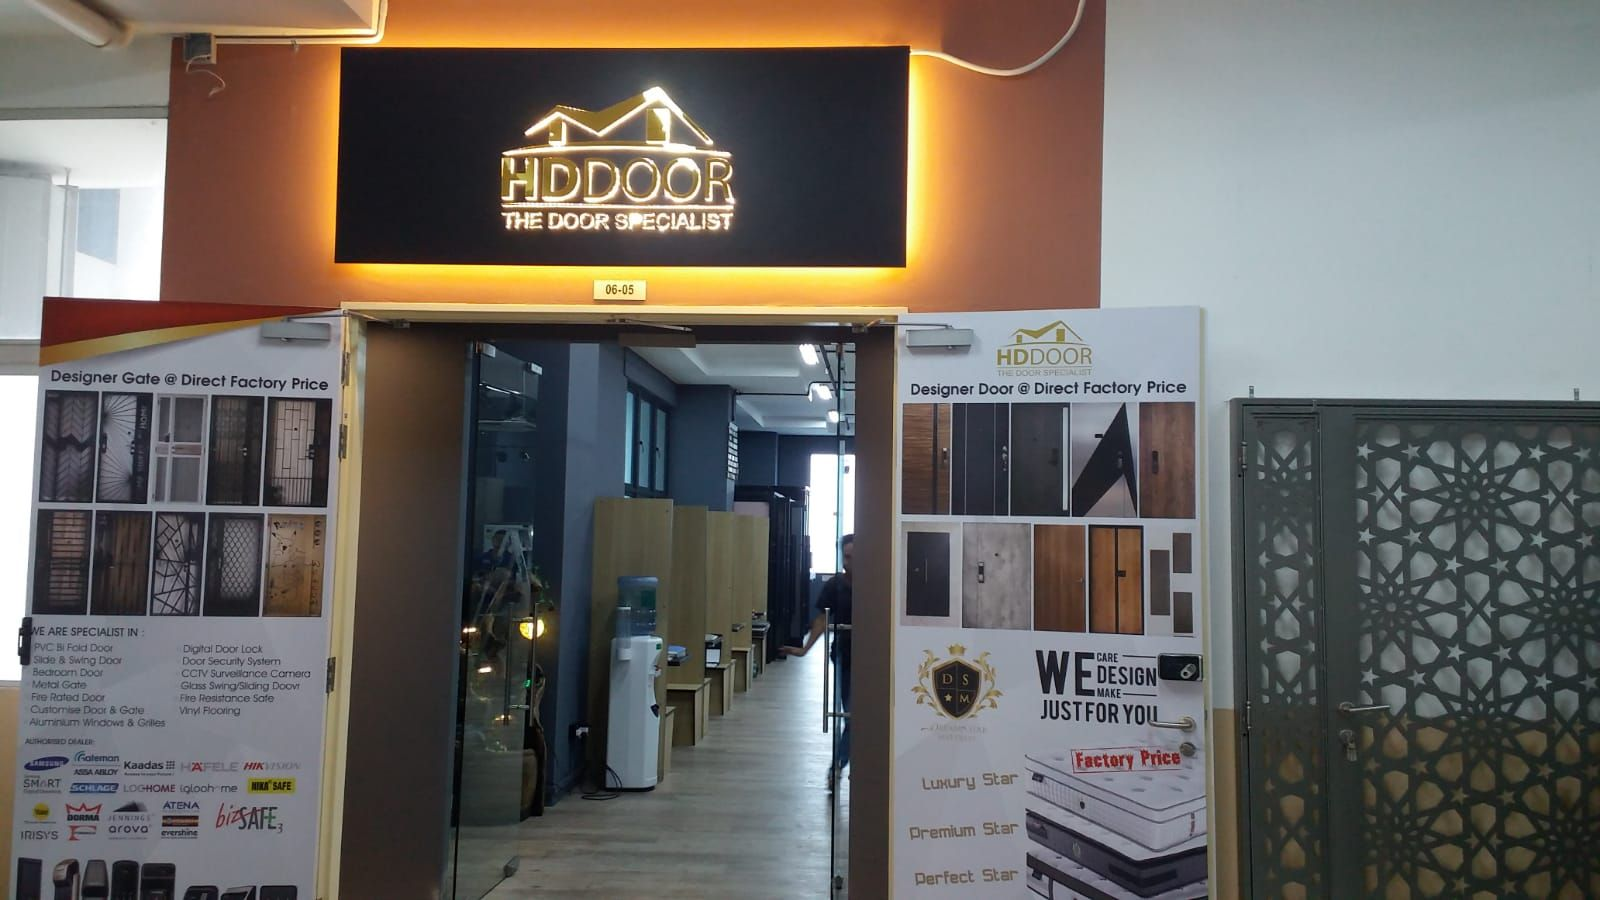 We Ve Moved To A New Office Location Hddoor Pte Ltd House Interior Smart Home Doors